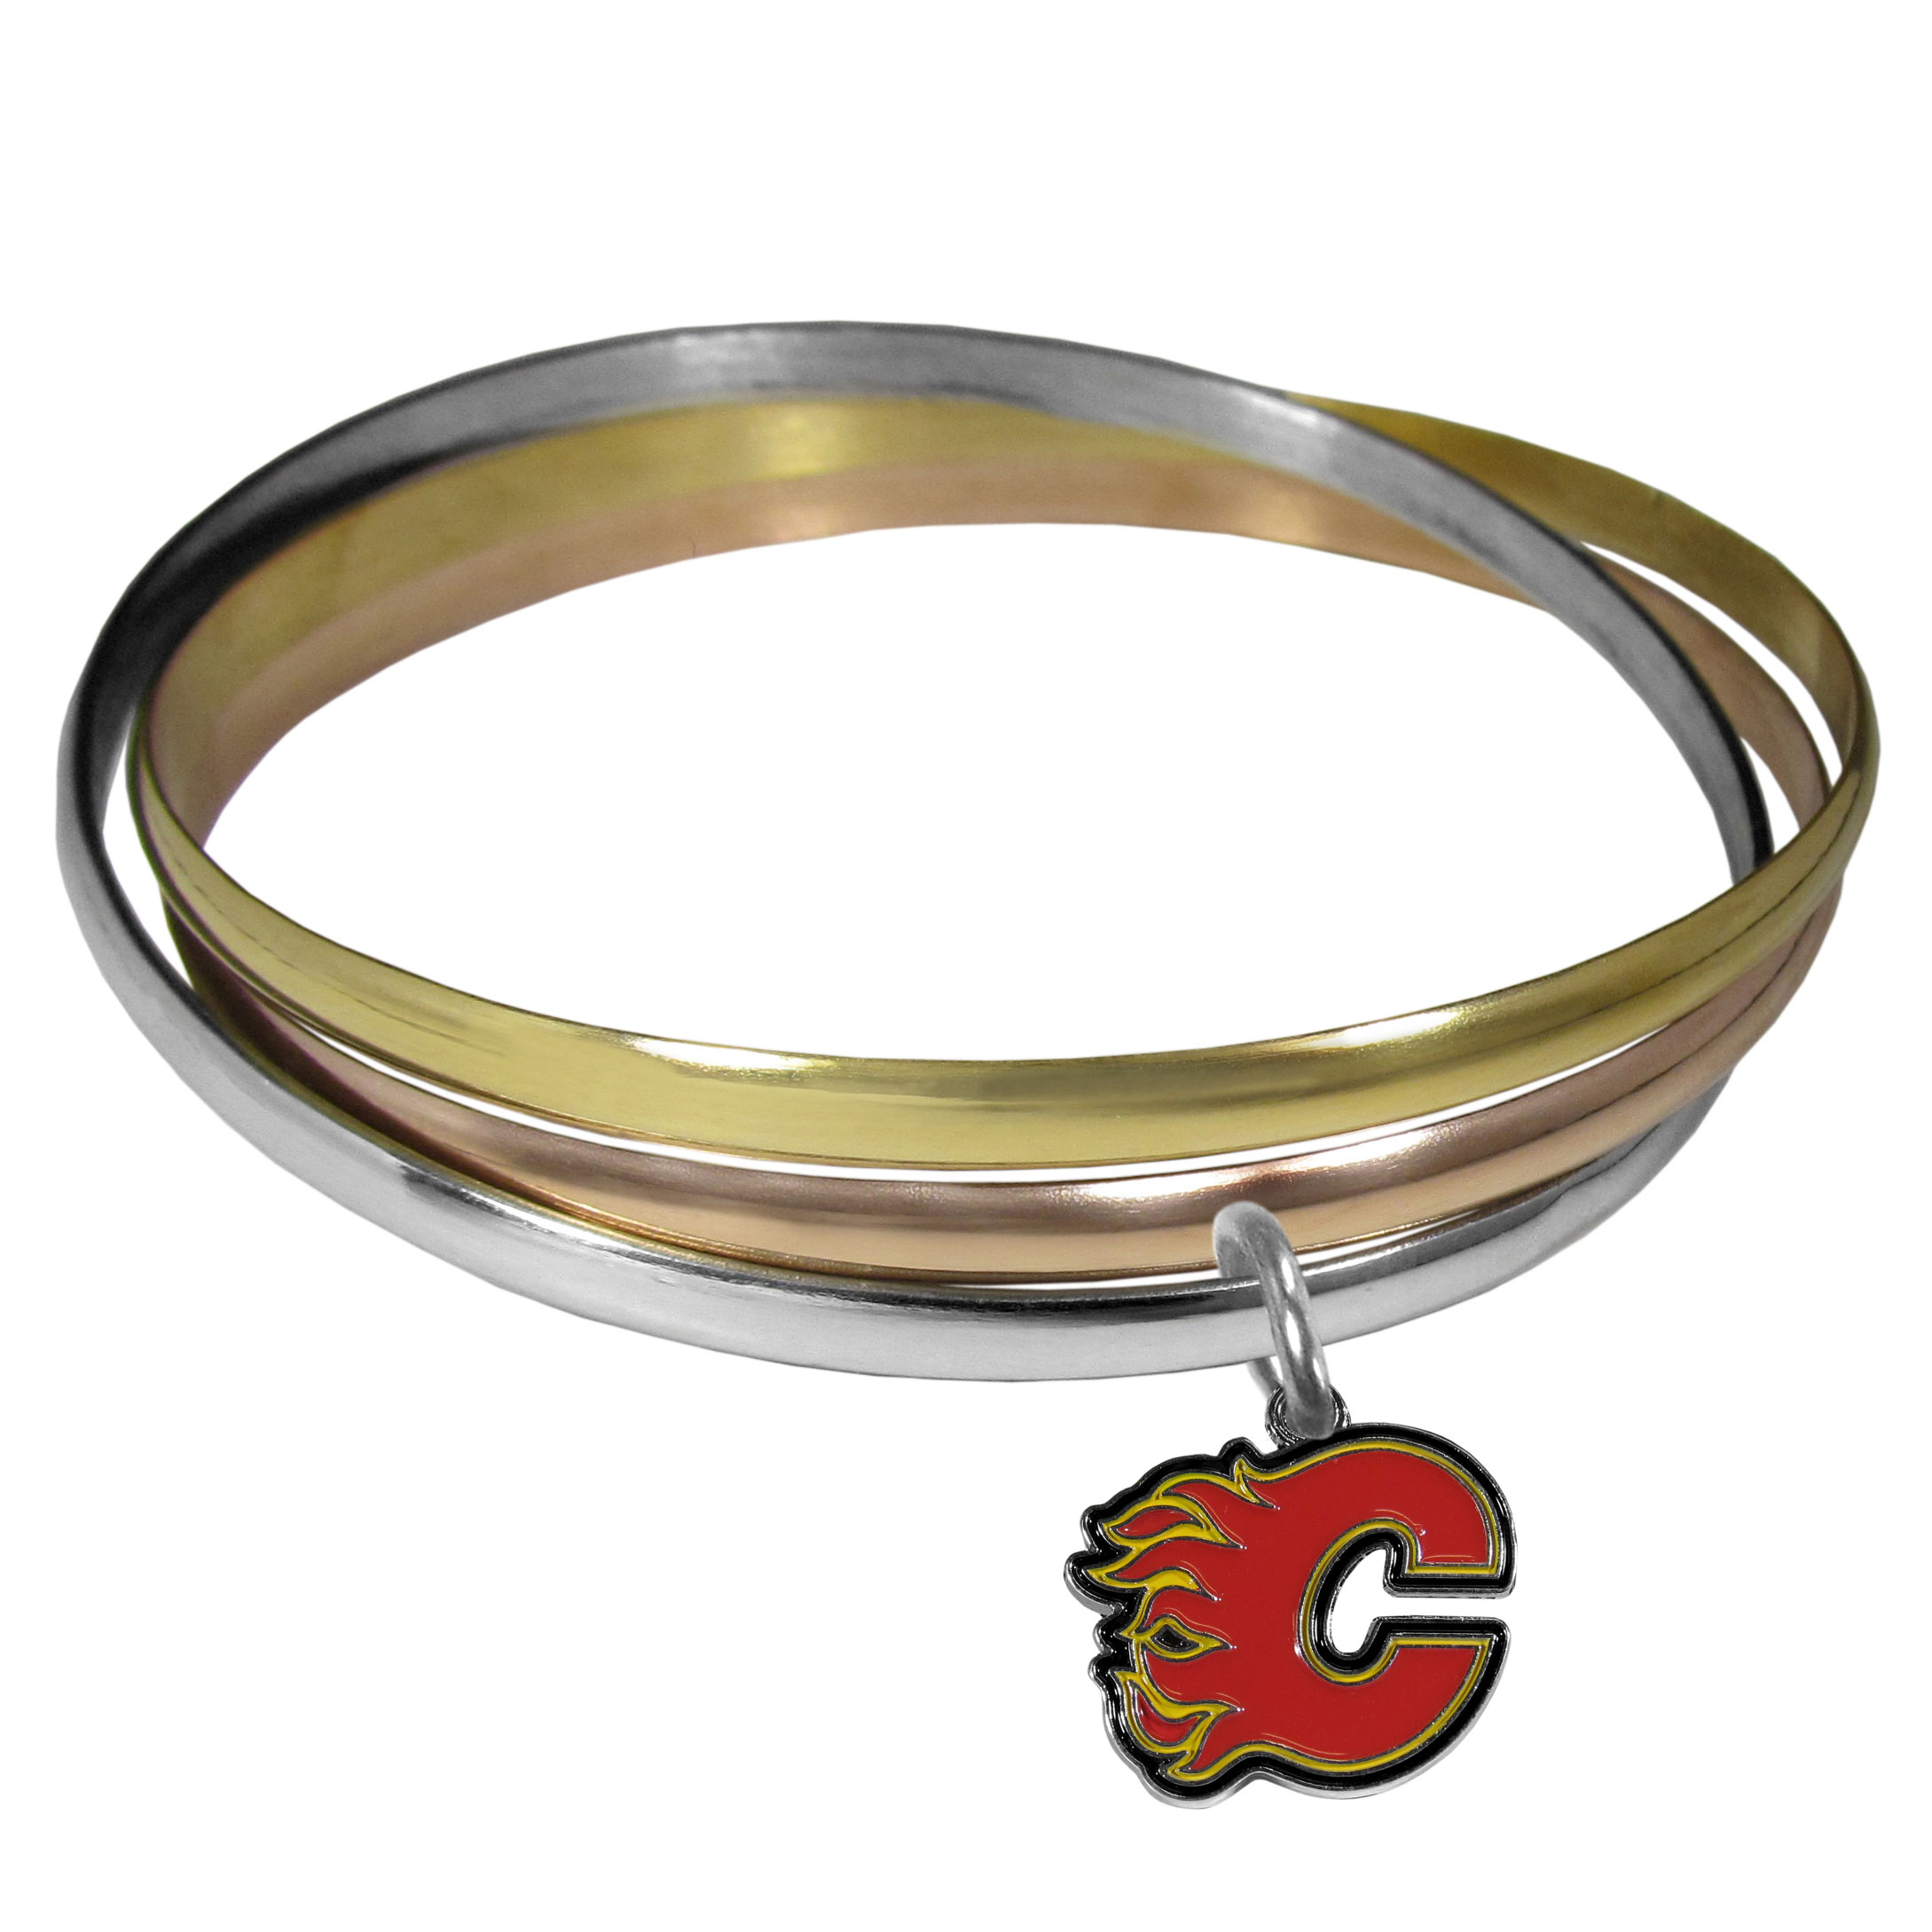 Calgary Flames® Tri-color Bangle Bracelet - These beautiful bangles come in a interlocking style and feature a fully cast Calgary Flames® charm with enameled team colors. The bracelet has a silver toned bangle, gold tone bangle and brass toned bangle.